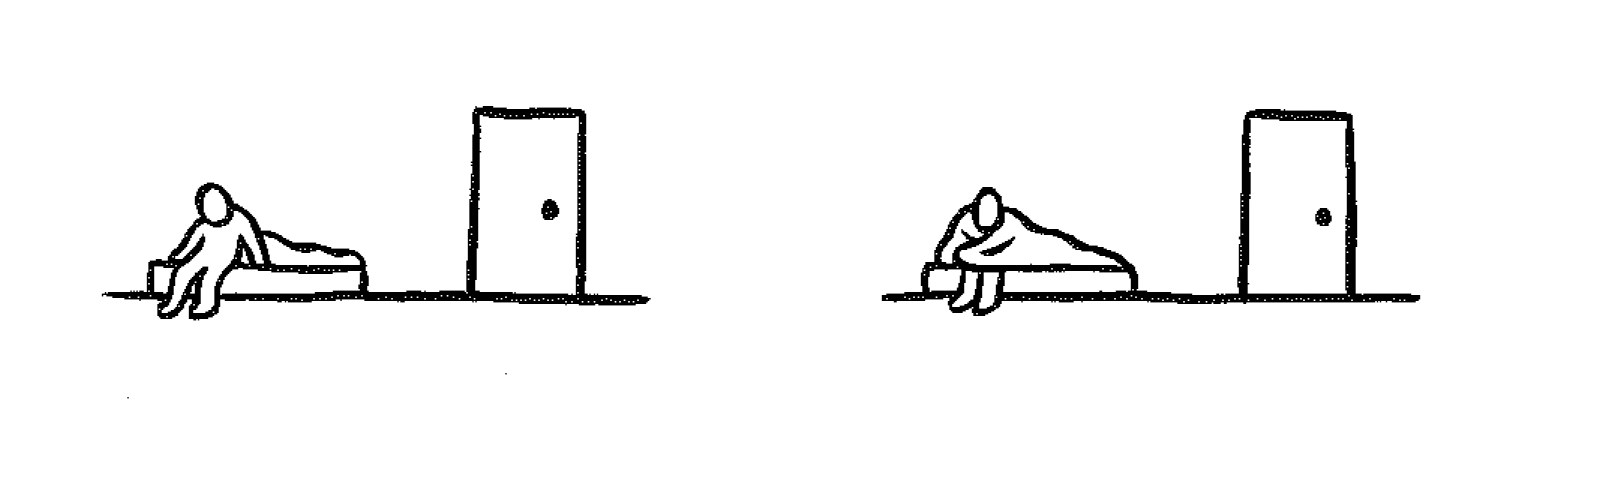 Series of comic sketches showing depression